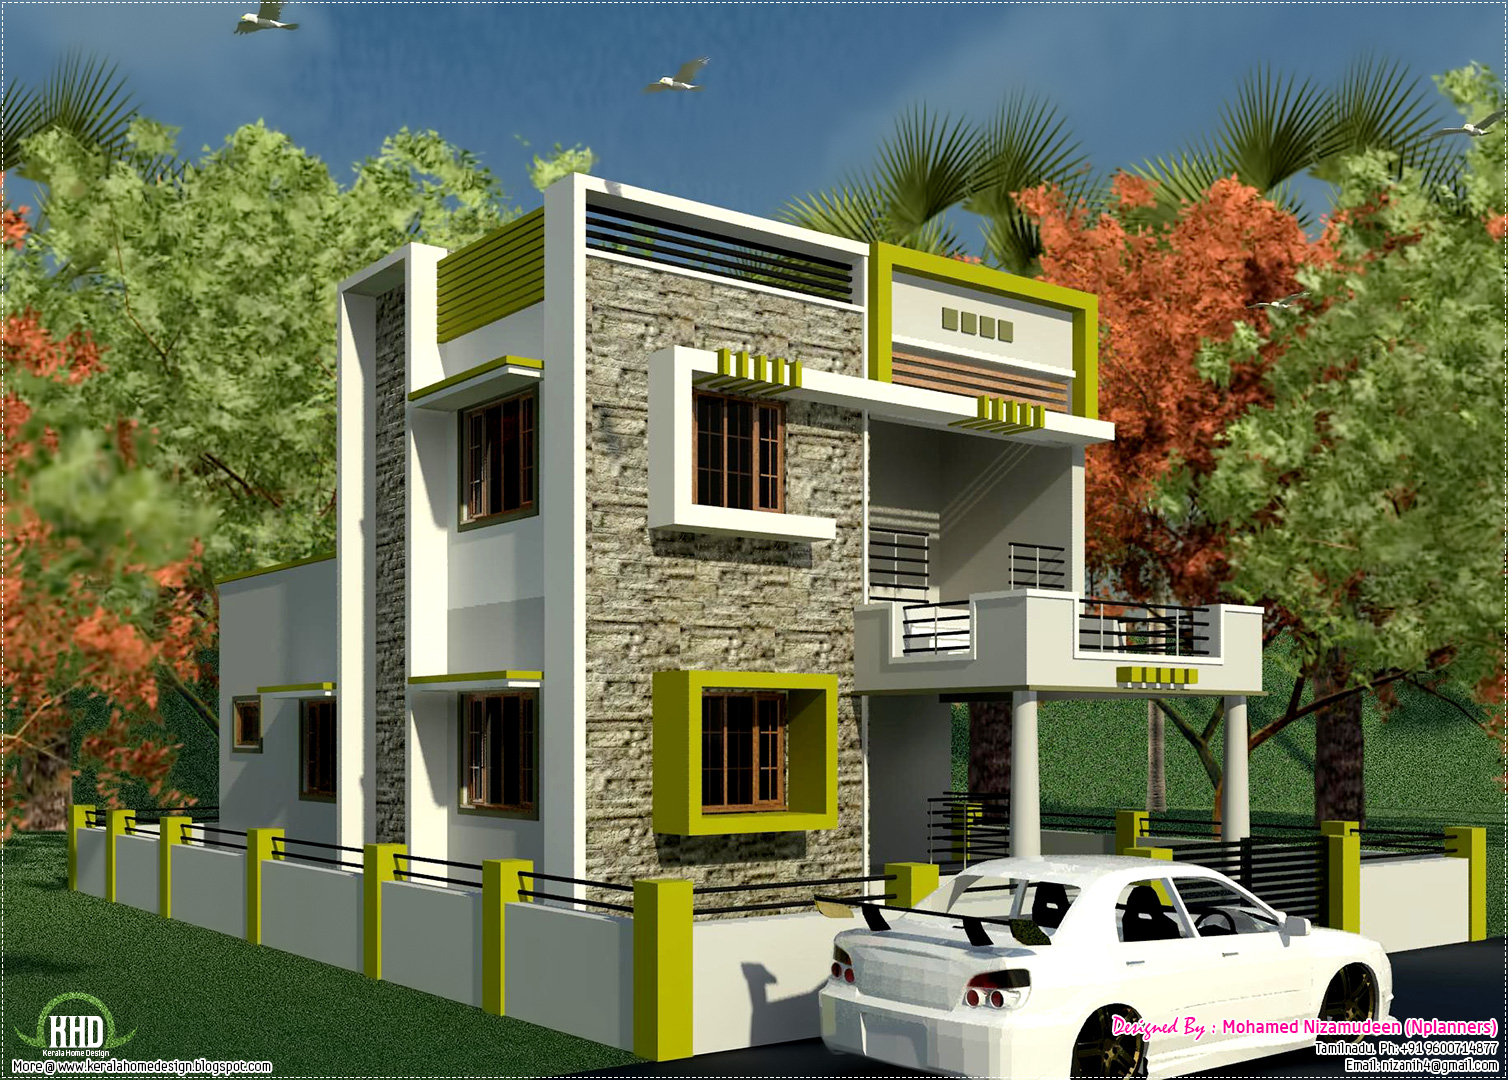 South indian style new modern 1460 sq feet house design kerala home design and floor plans - Housing designs ...